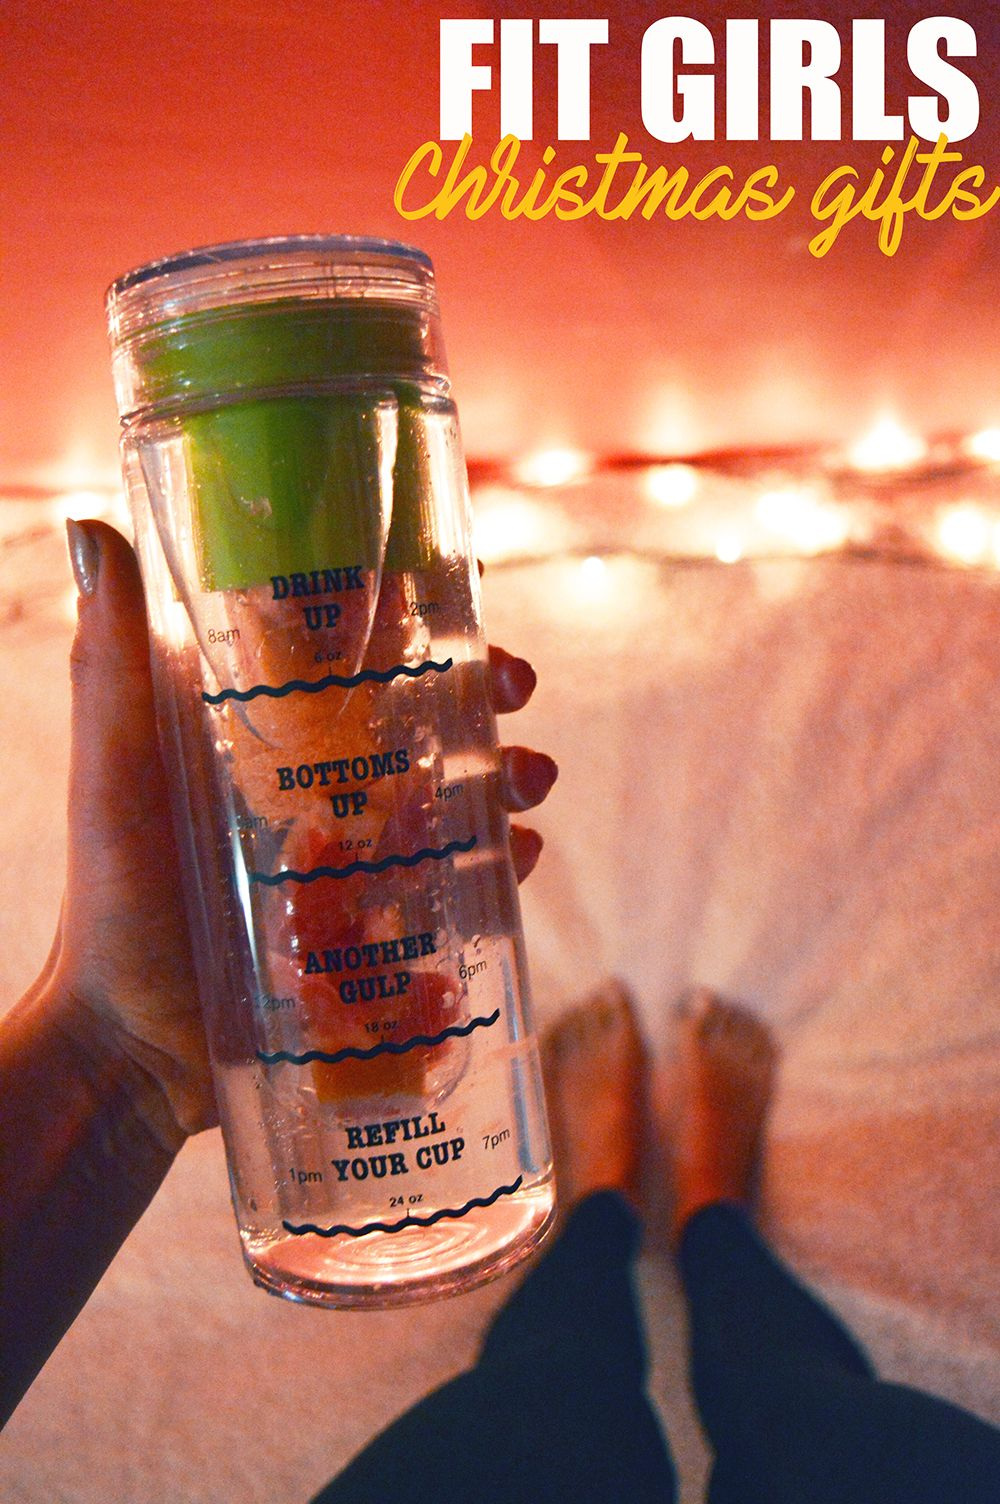 water-bottles-25-fitness-gift-ideas-the-best-fit-girls-christmas-presents